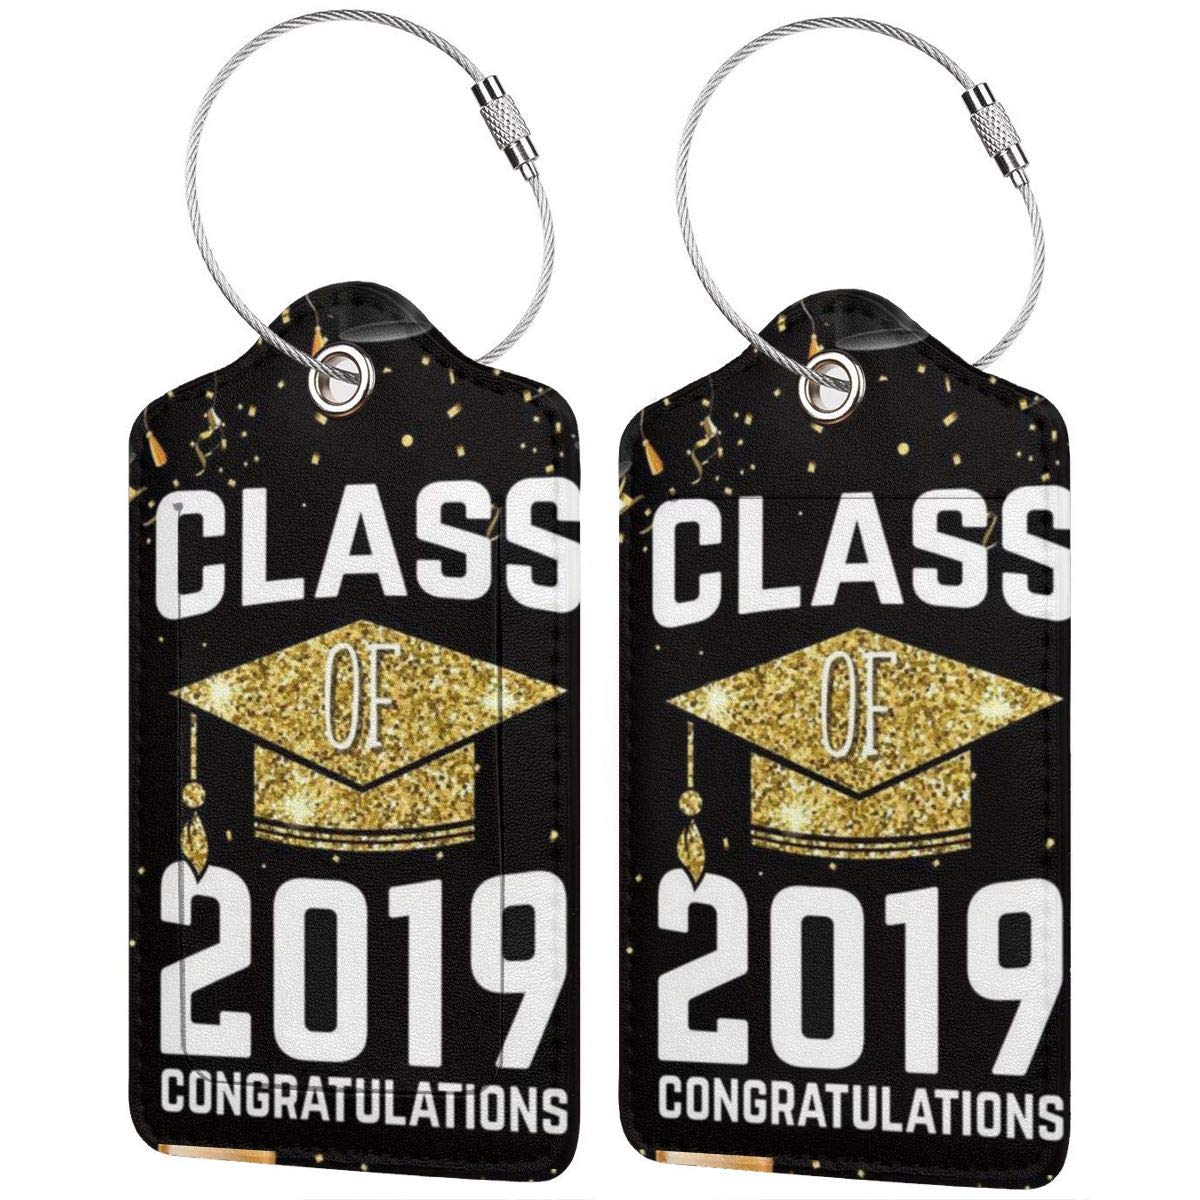 2019 School Graduations With Golden Bachelor Cap Leather Luggage Tags Personalized Address Card With Privacy Flap